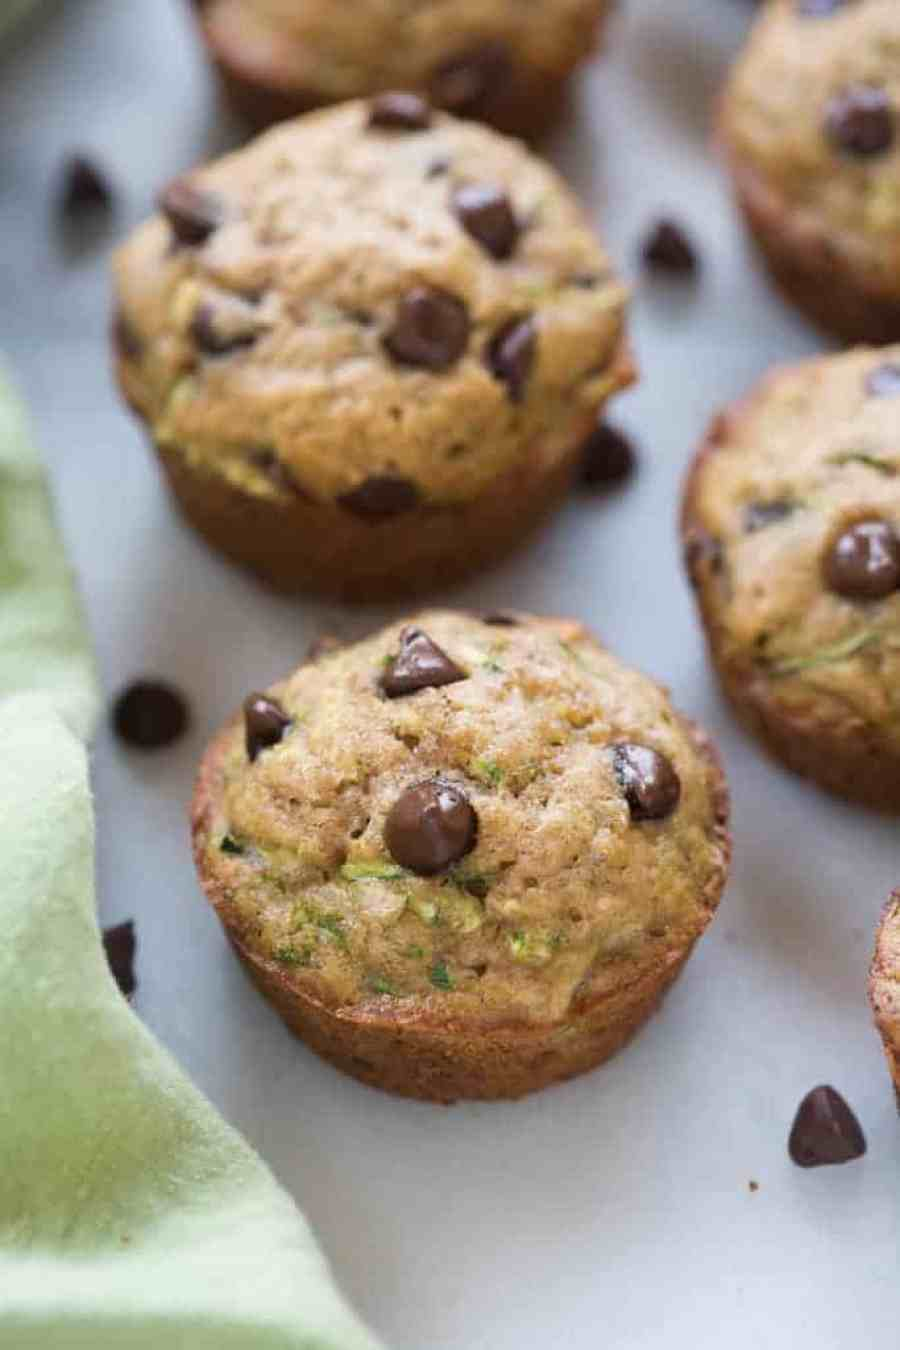 The BEST chocolate chip zucchini muffins! They're so easy and made with whole grains. My family loves these. | tastesbetterfromscratch.com